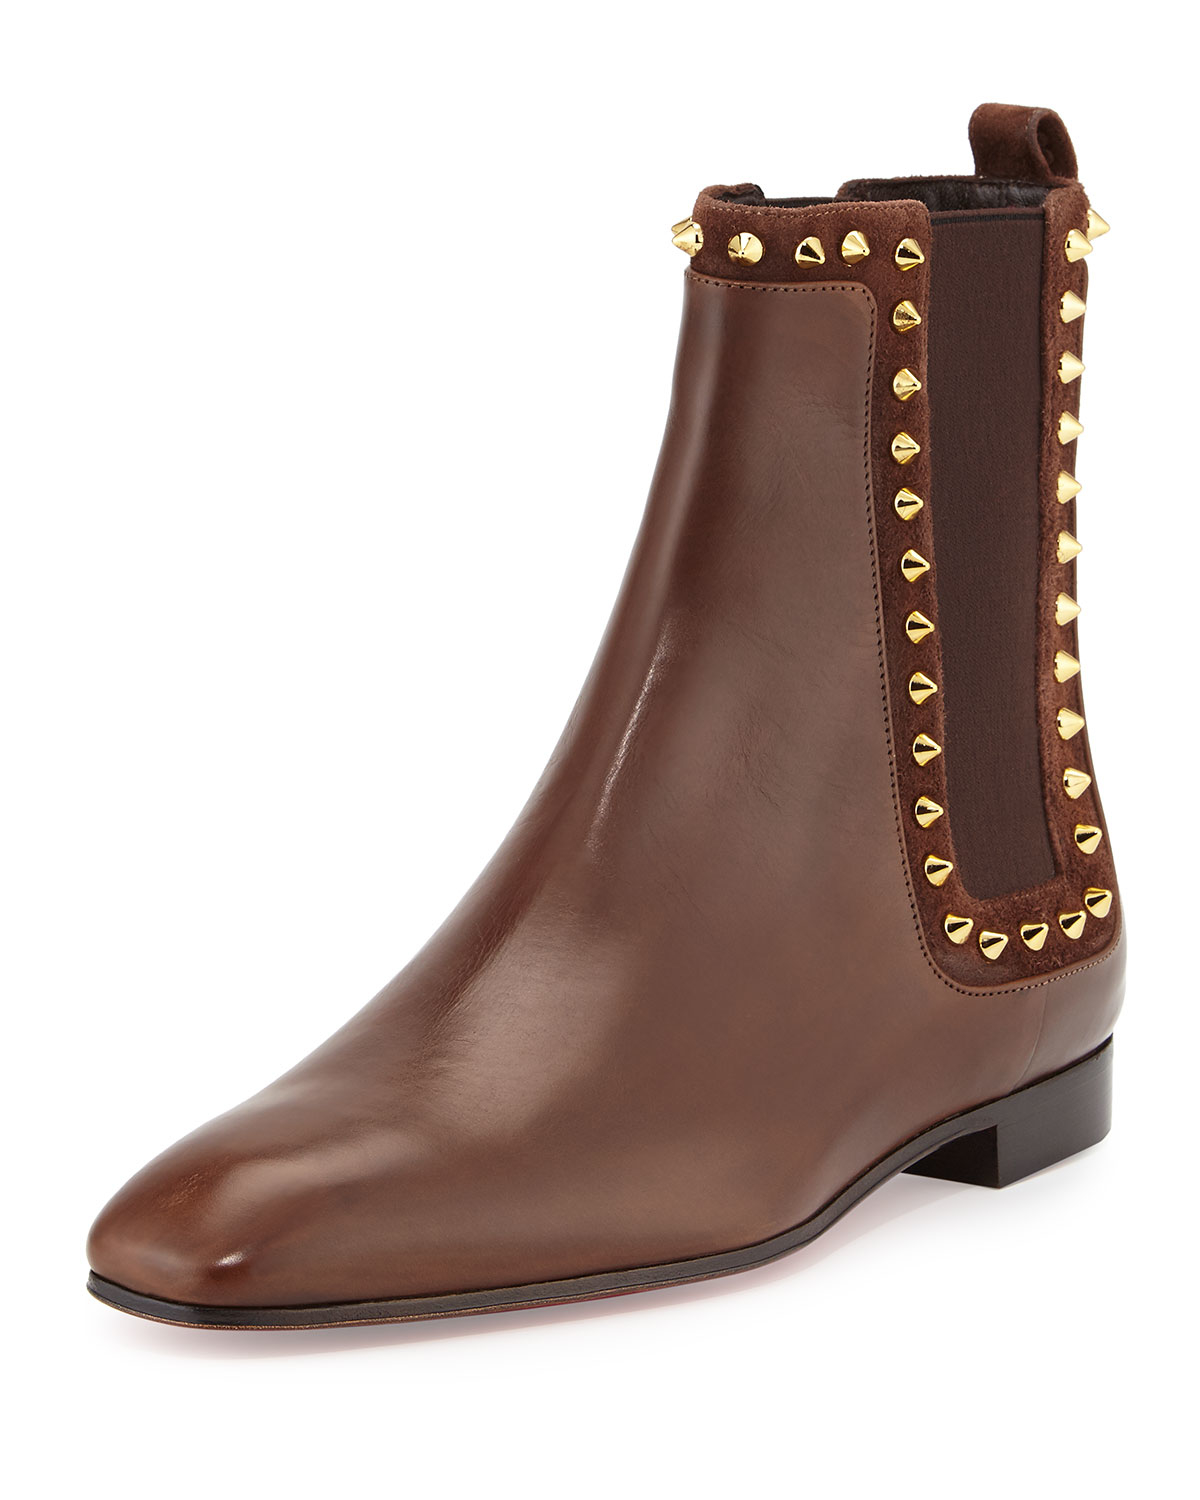 christian louboutin flat ankle boots